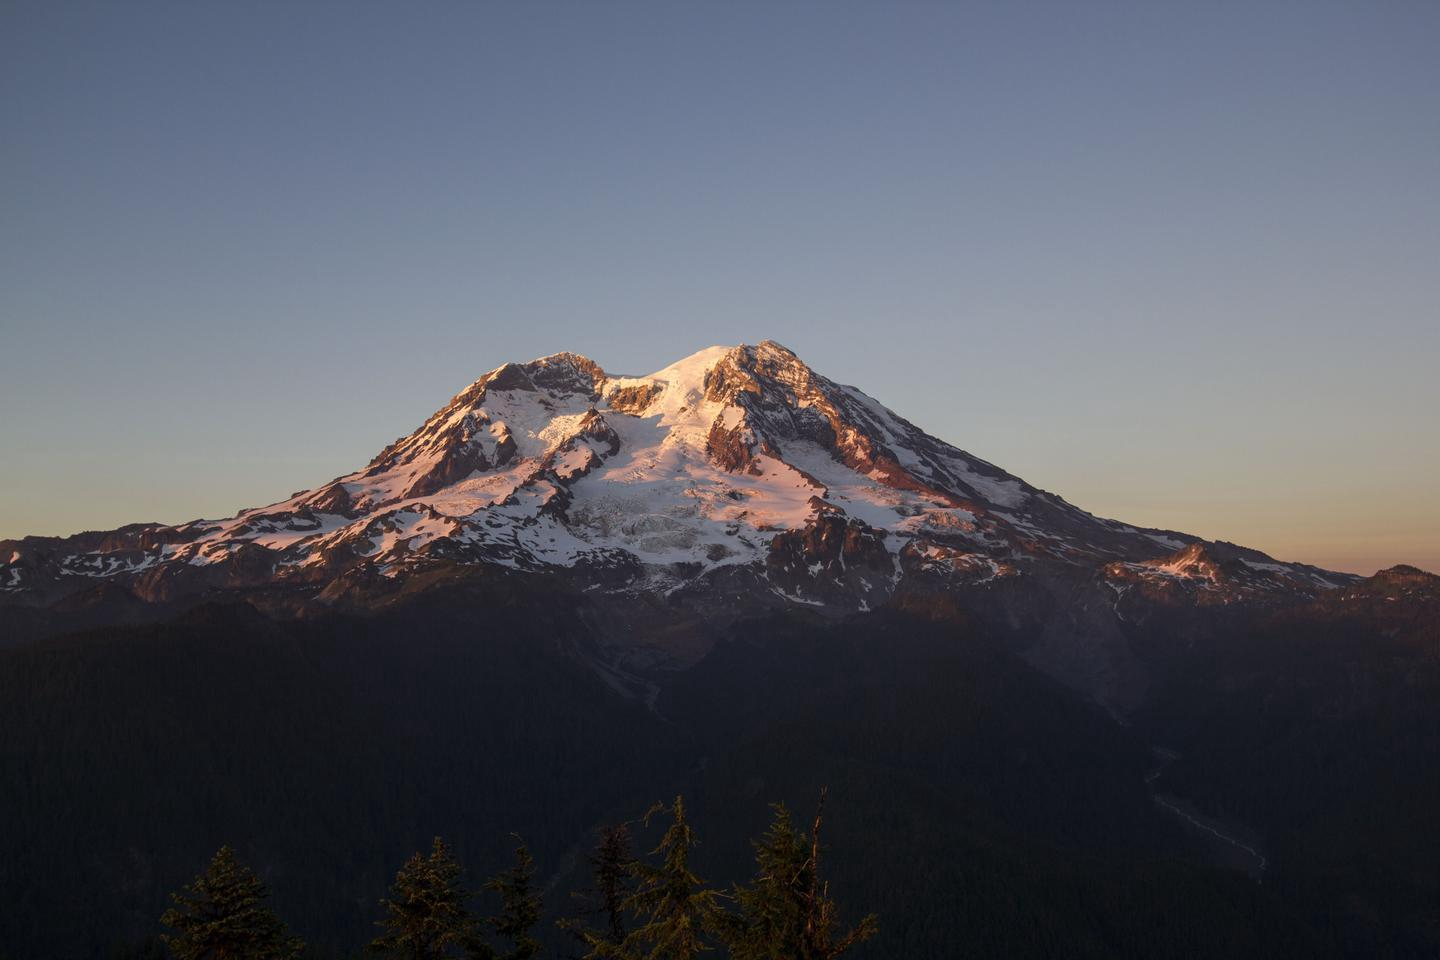 Mount Rainier at sunsetEvery scenic overlook shows a different side of Mount Rainier. Viewed from Gobblers Knob Lookout at sunset, the glaciers covering the mountain turn pink and gold.